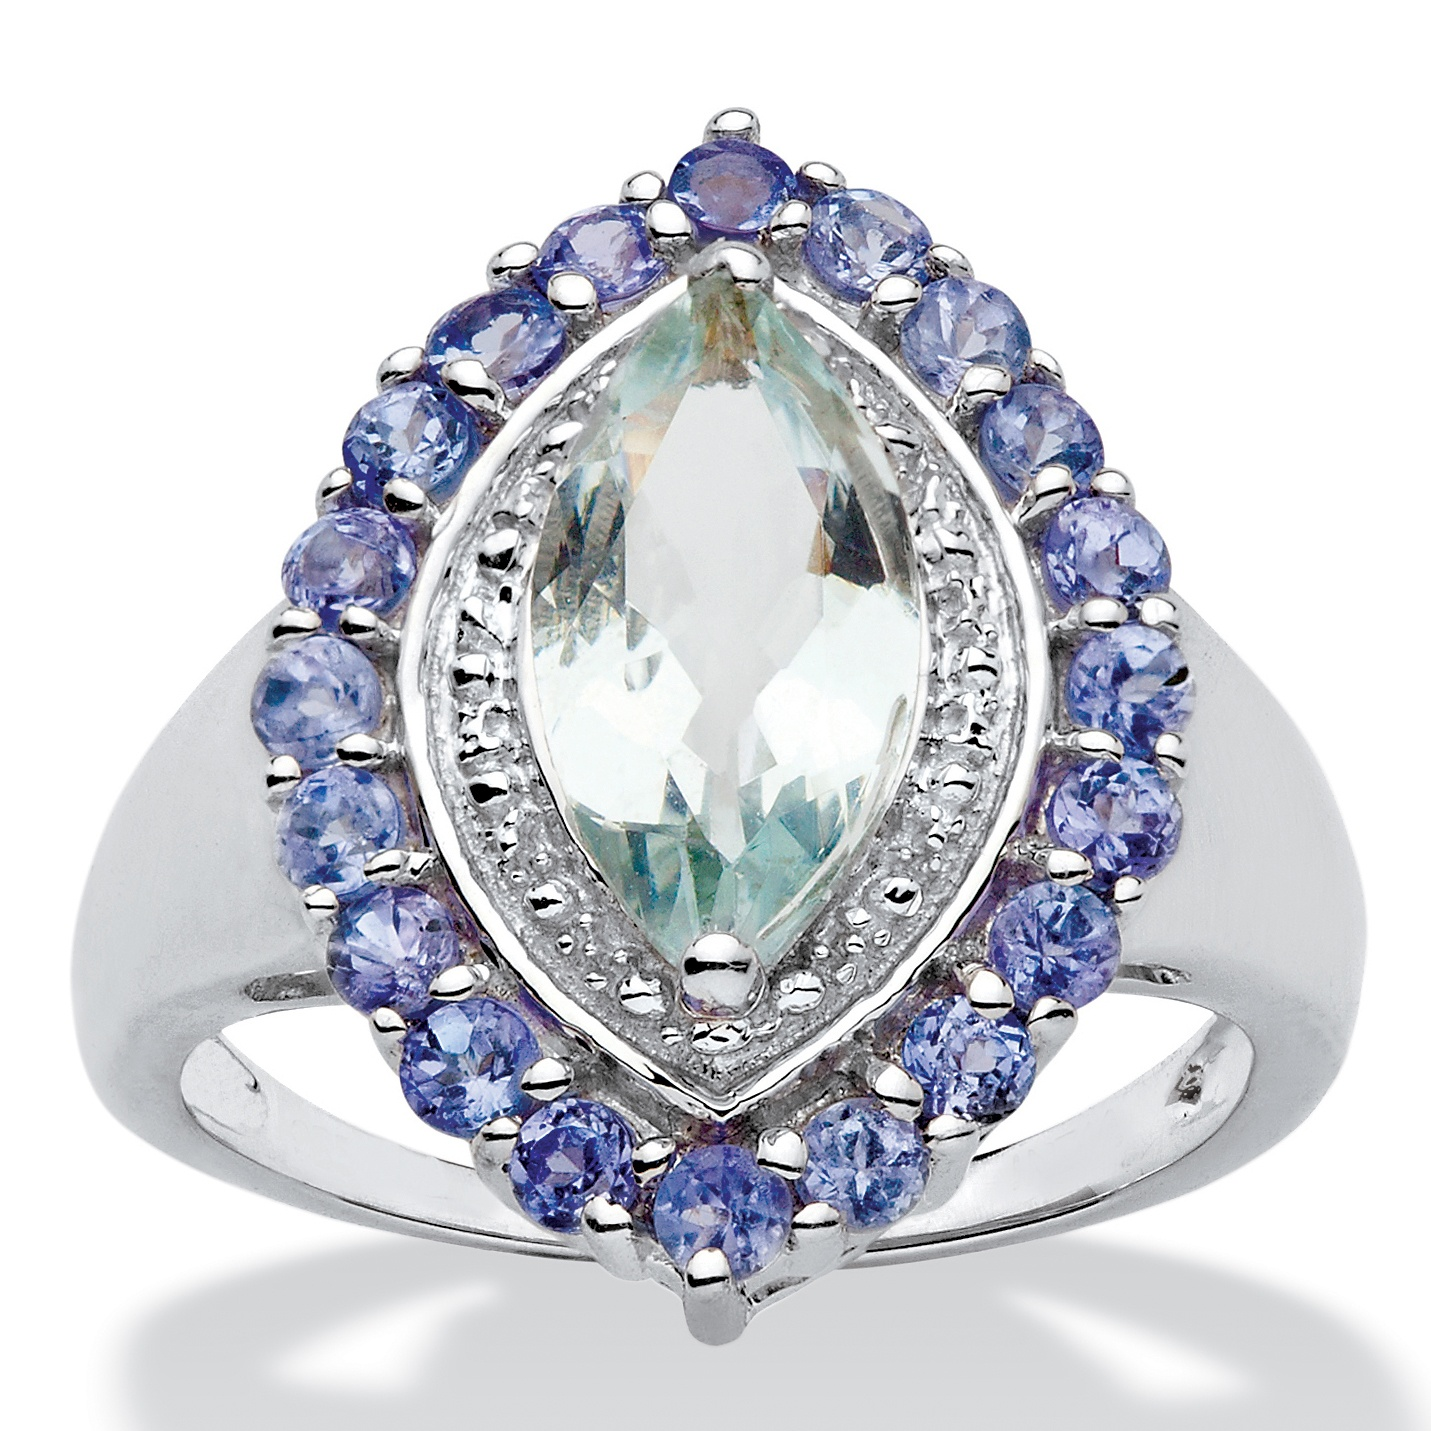 PalmBeach Jewelry 2.45 TCW Marquise-Cut Genuine Aquamarine and Tanzanite Halo Ring in Sterling Silver